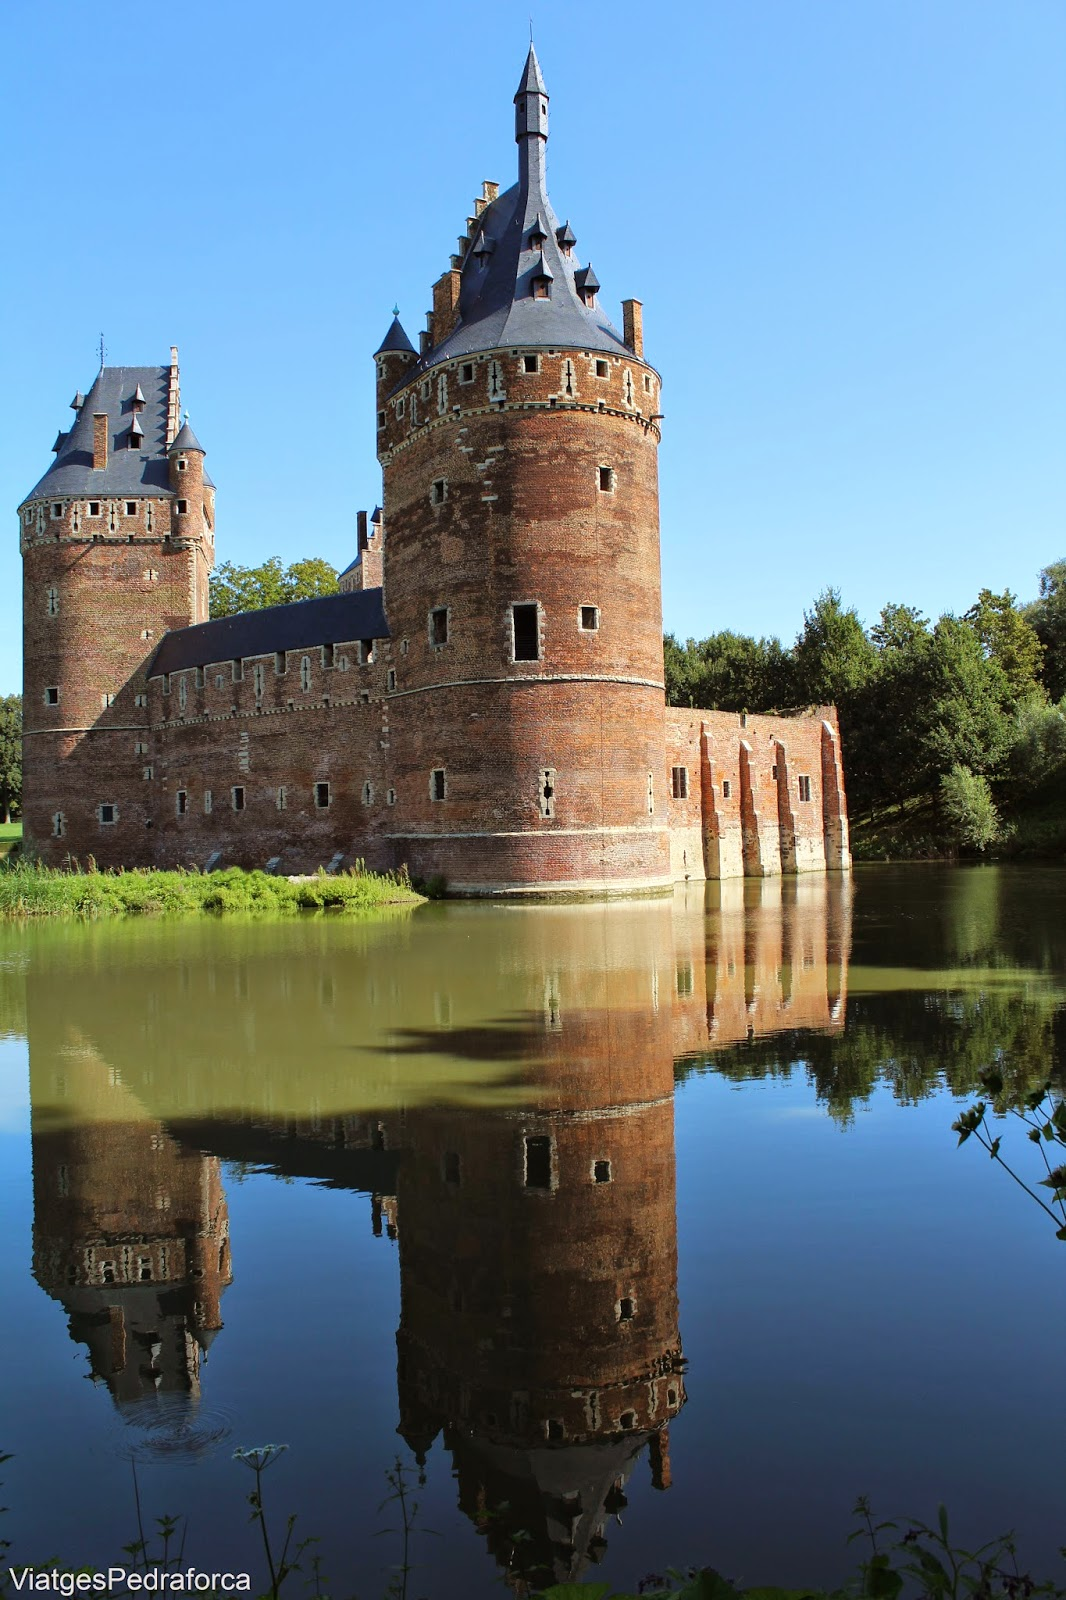 Chateau castell medieva de Beersel Flandes Belgica